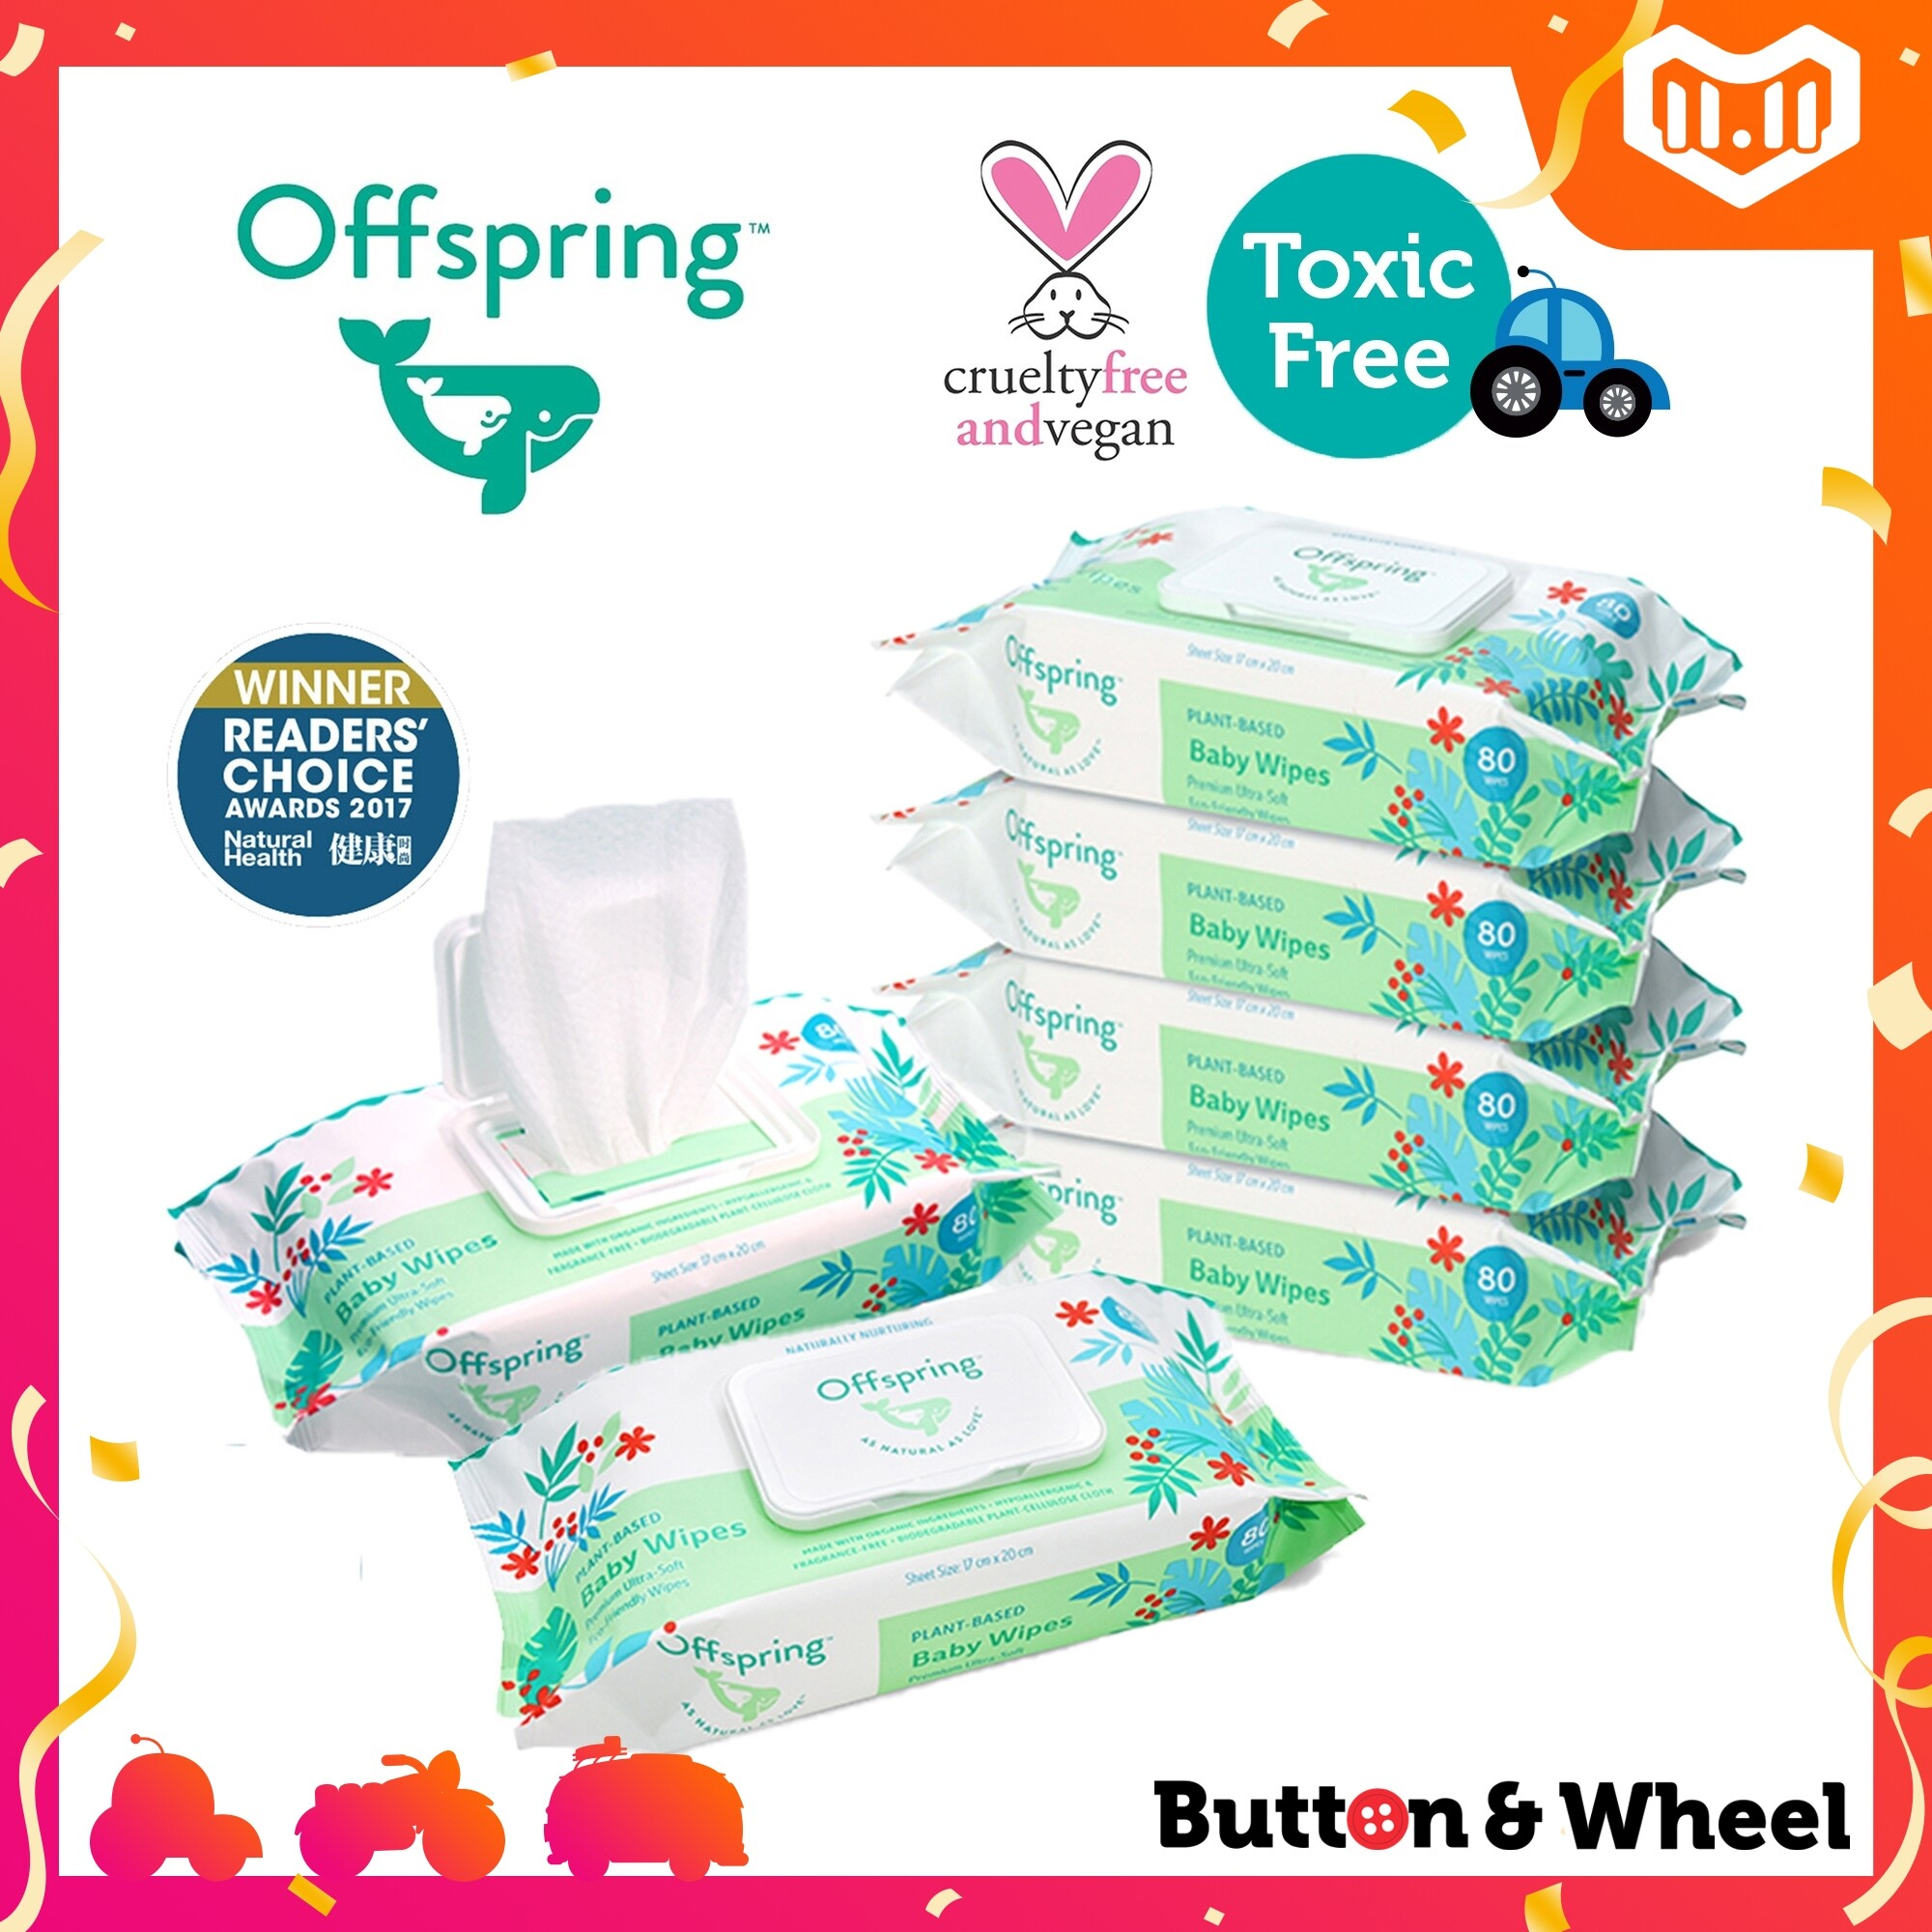 Offspring Baby Wipes 80ct 6-Pack Bundle (Expiry Date: 10/12/2021):OI-BW-80CT-6P